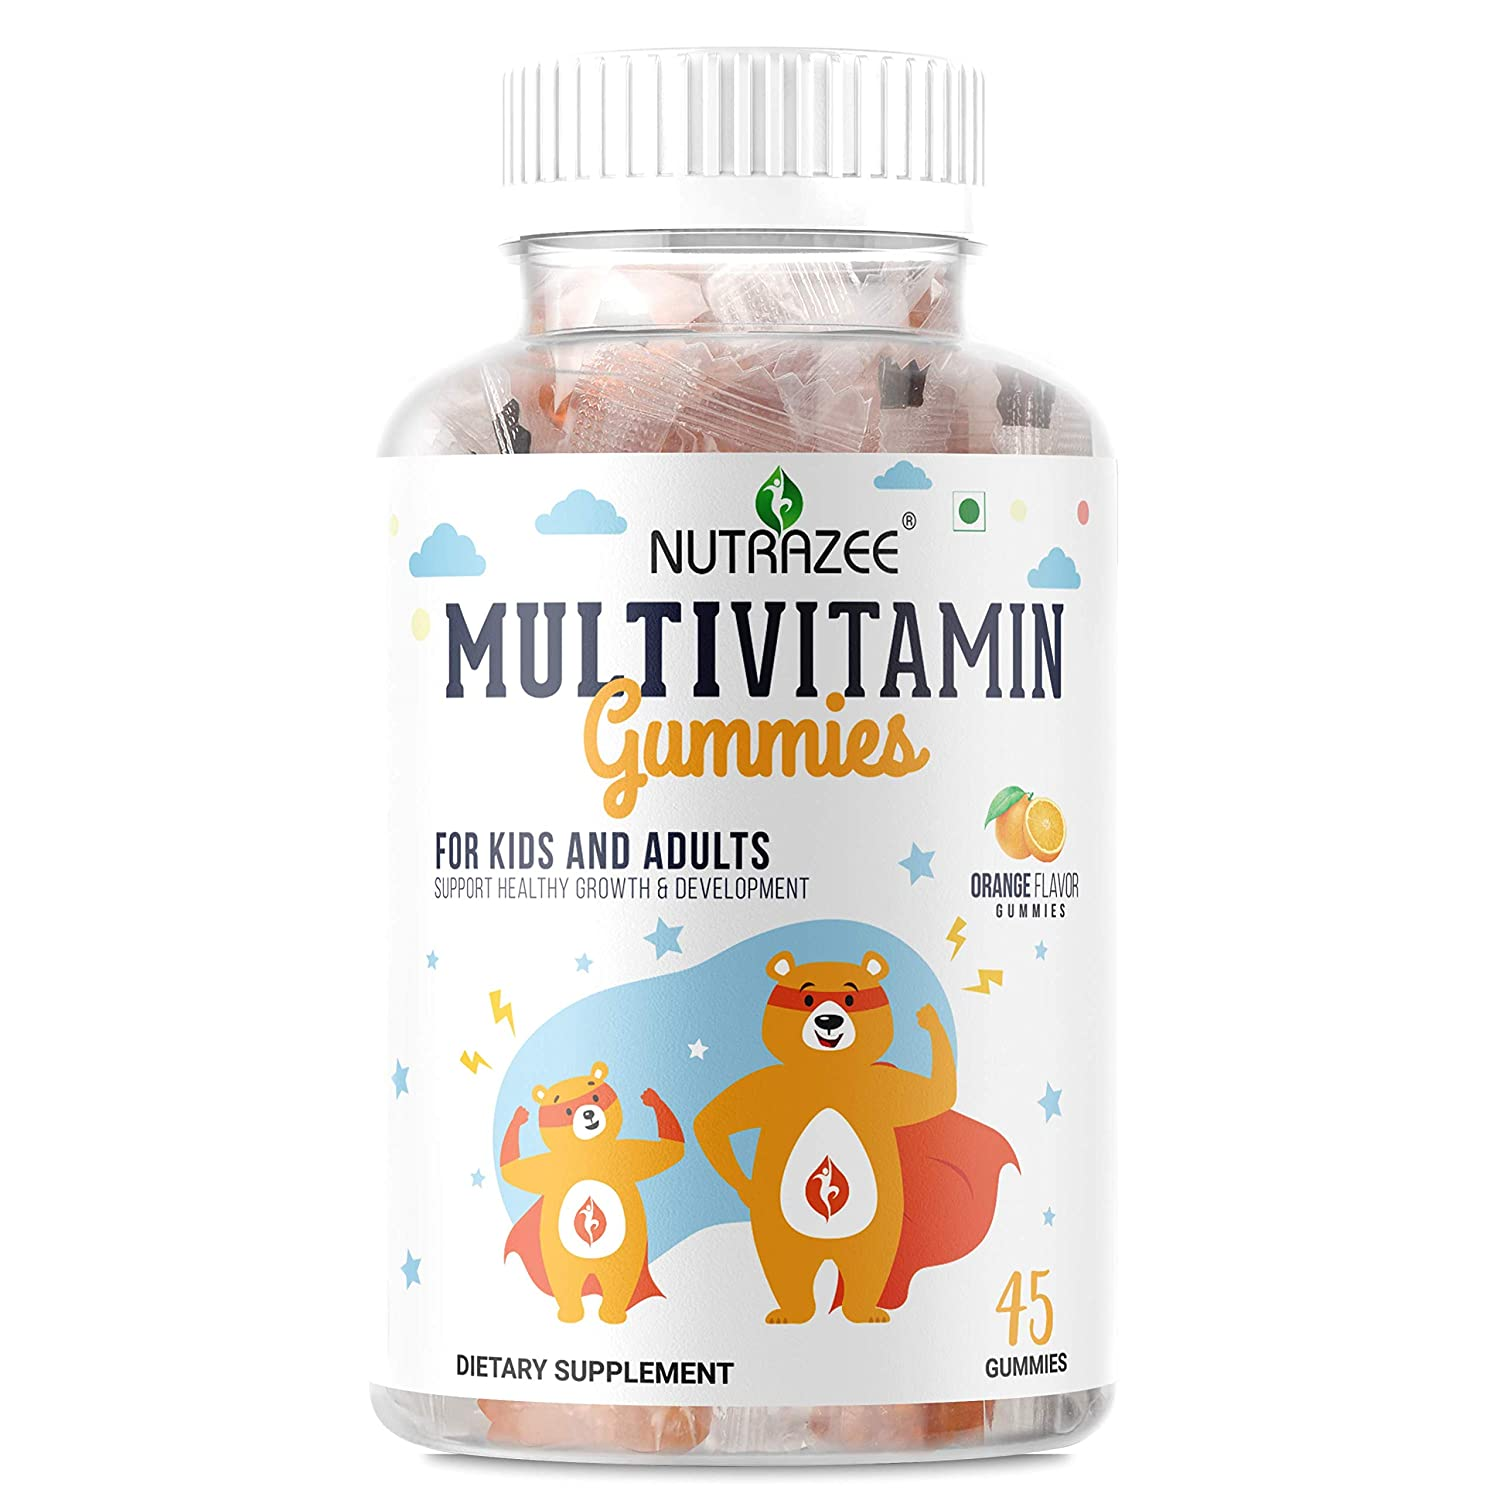 Nutrazee Complete Multivitamin Vegetarian Gummies For Growth, Development & Immunity, 45 Gummy Bears